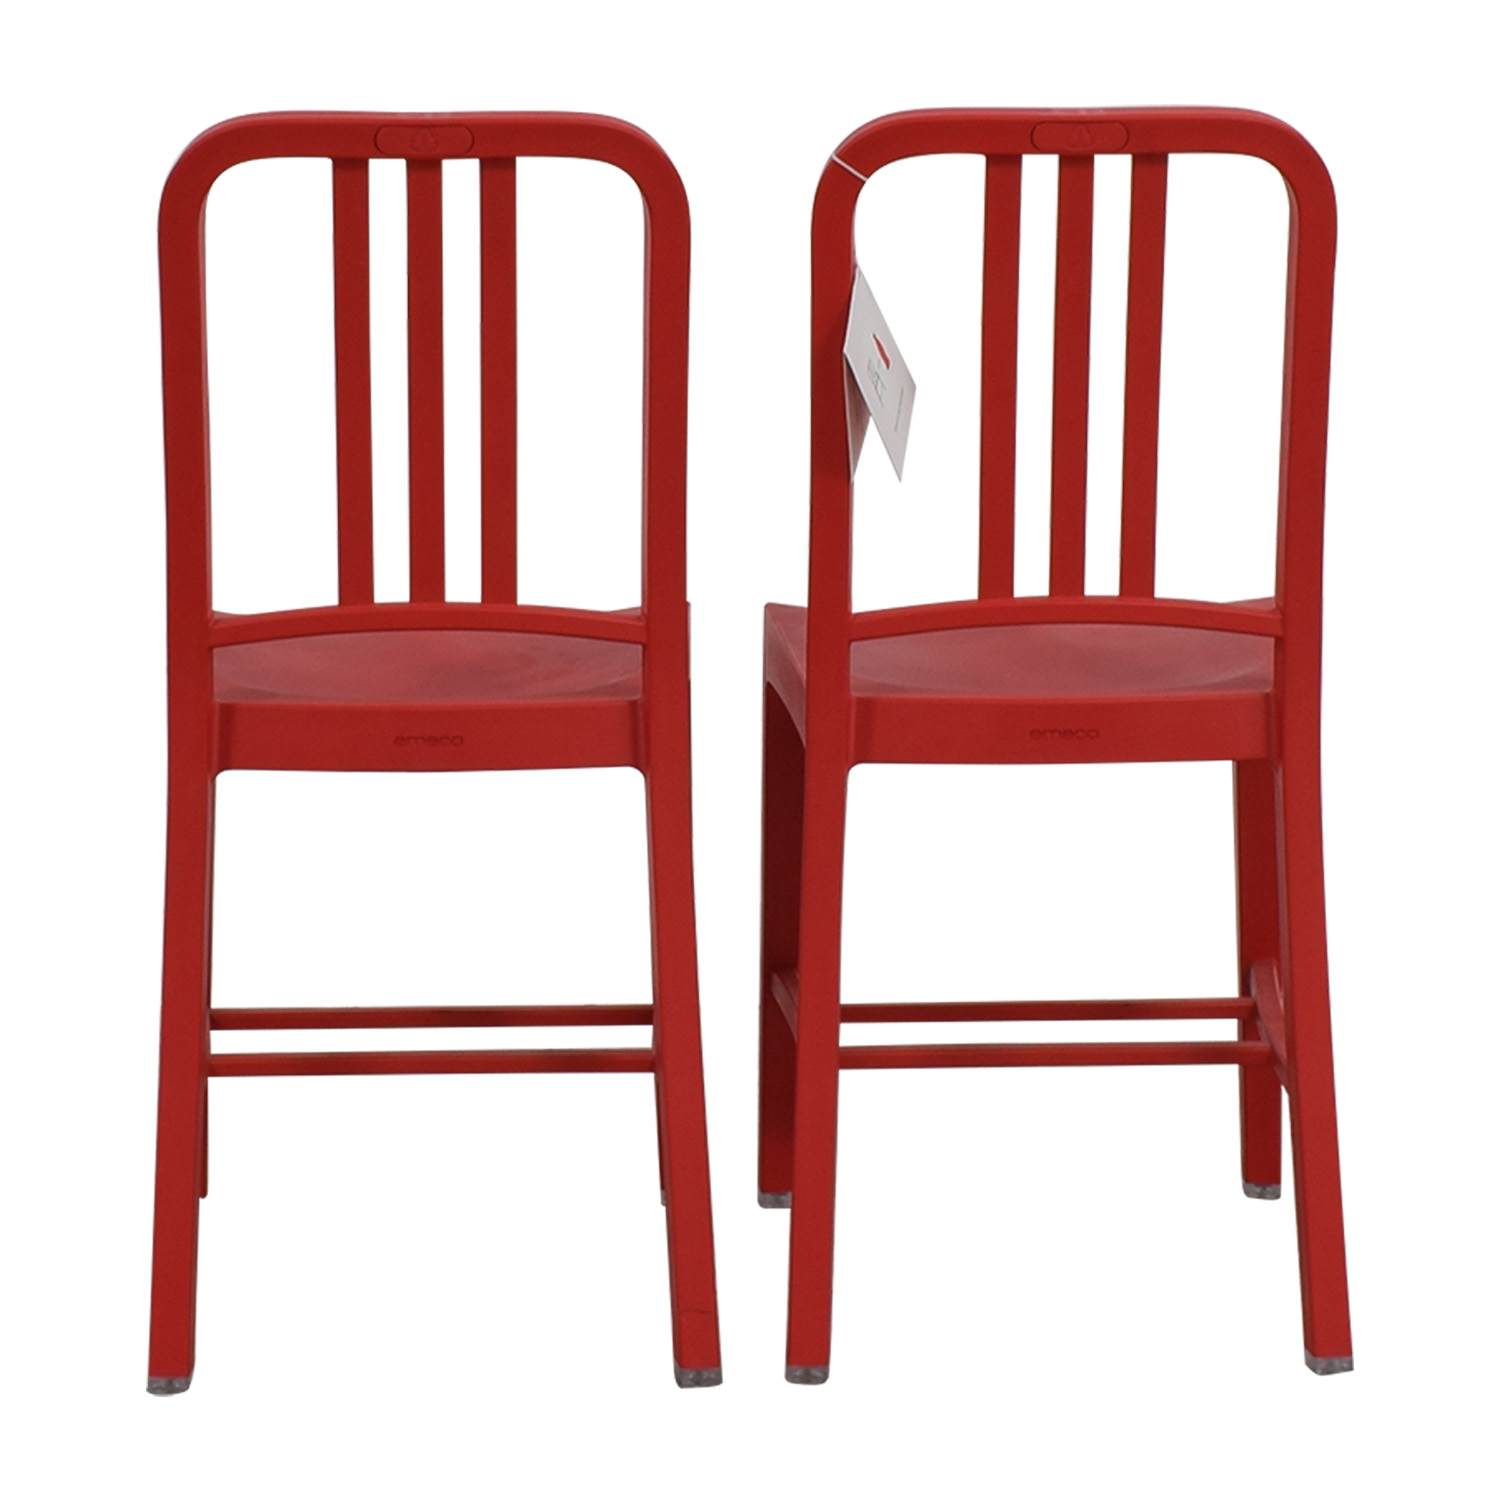 Emeco 111 Navy Recycled Red Chairs / Chairs